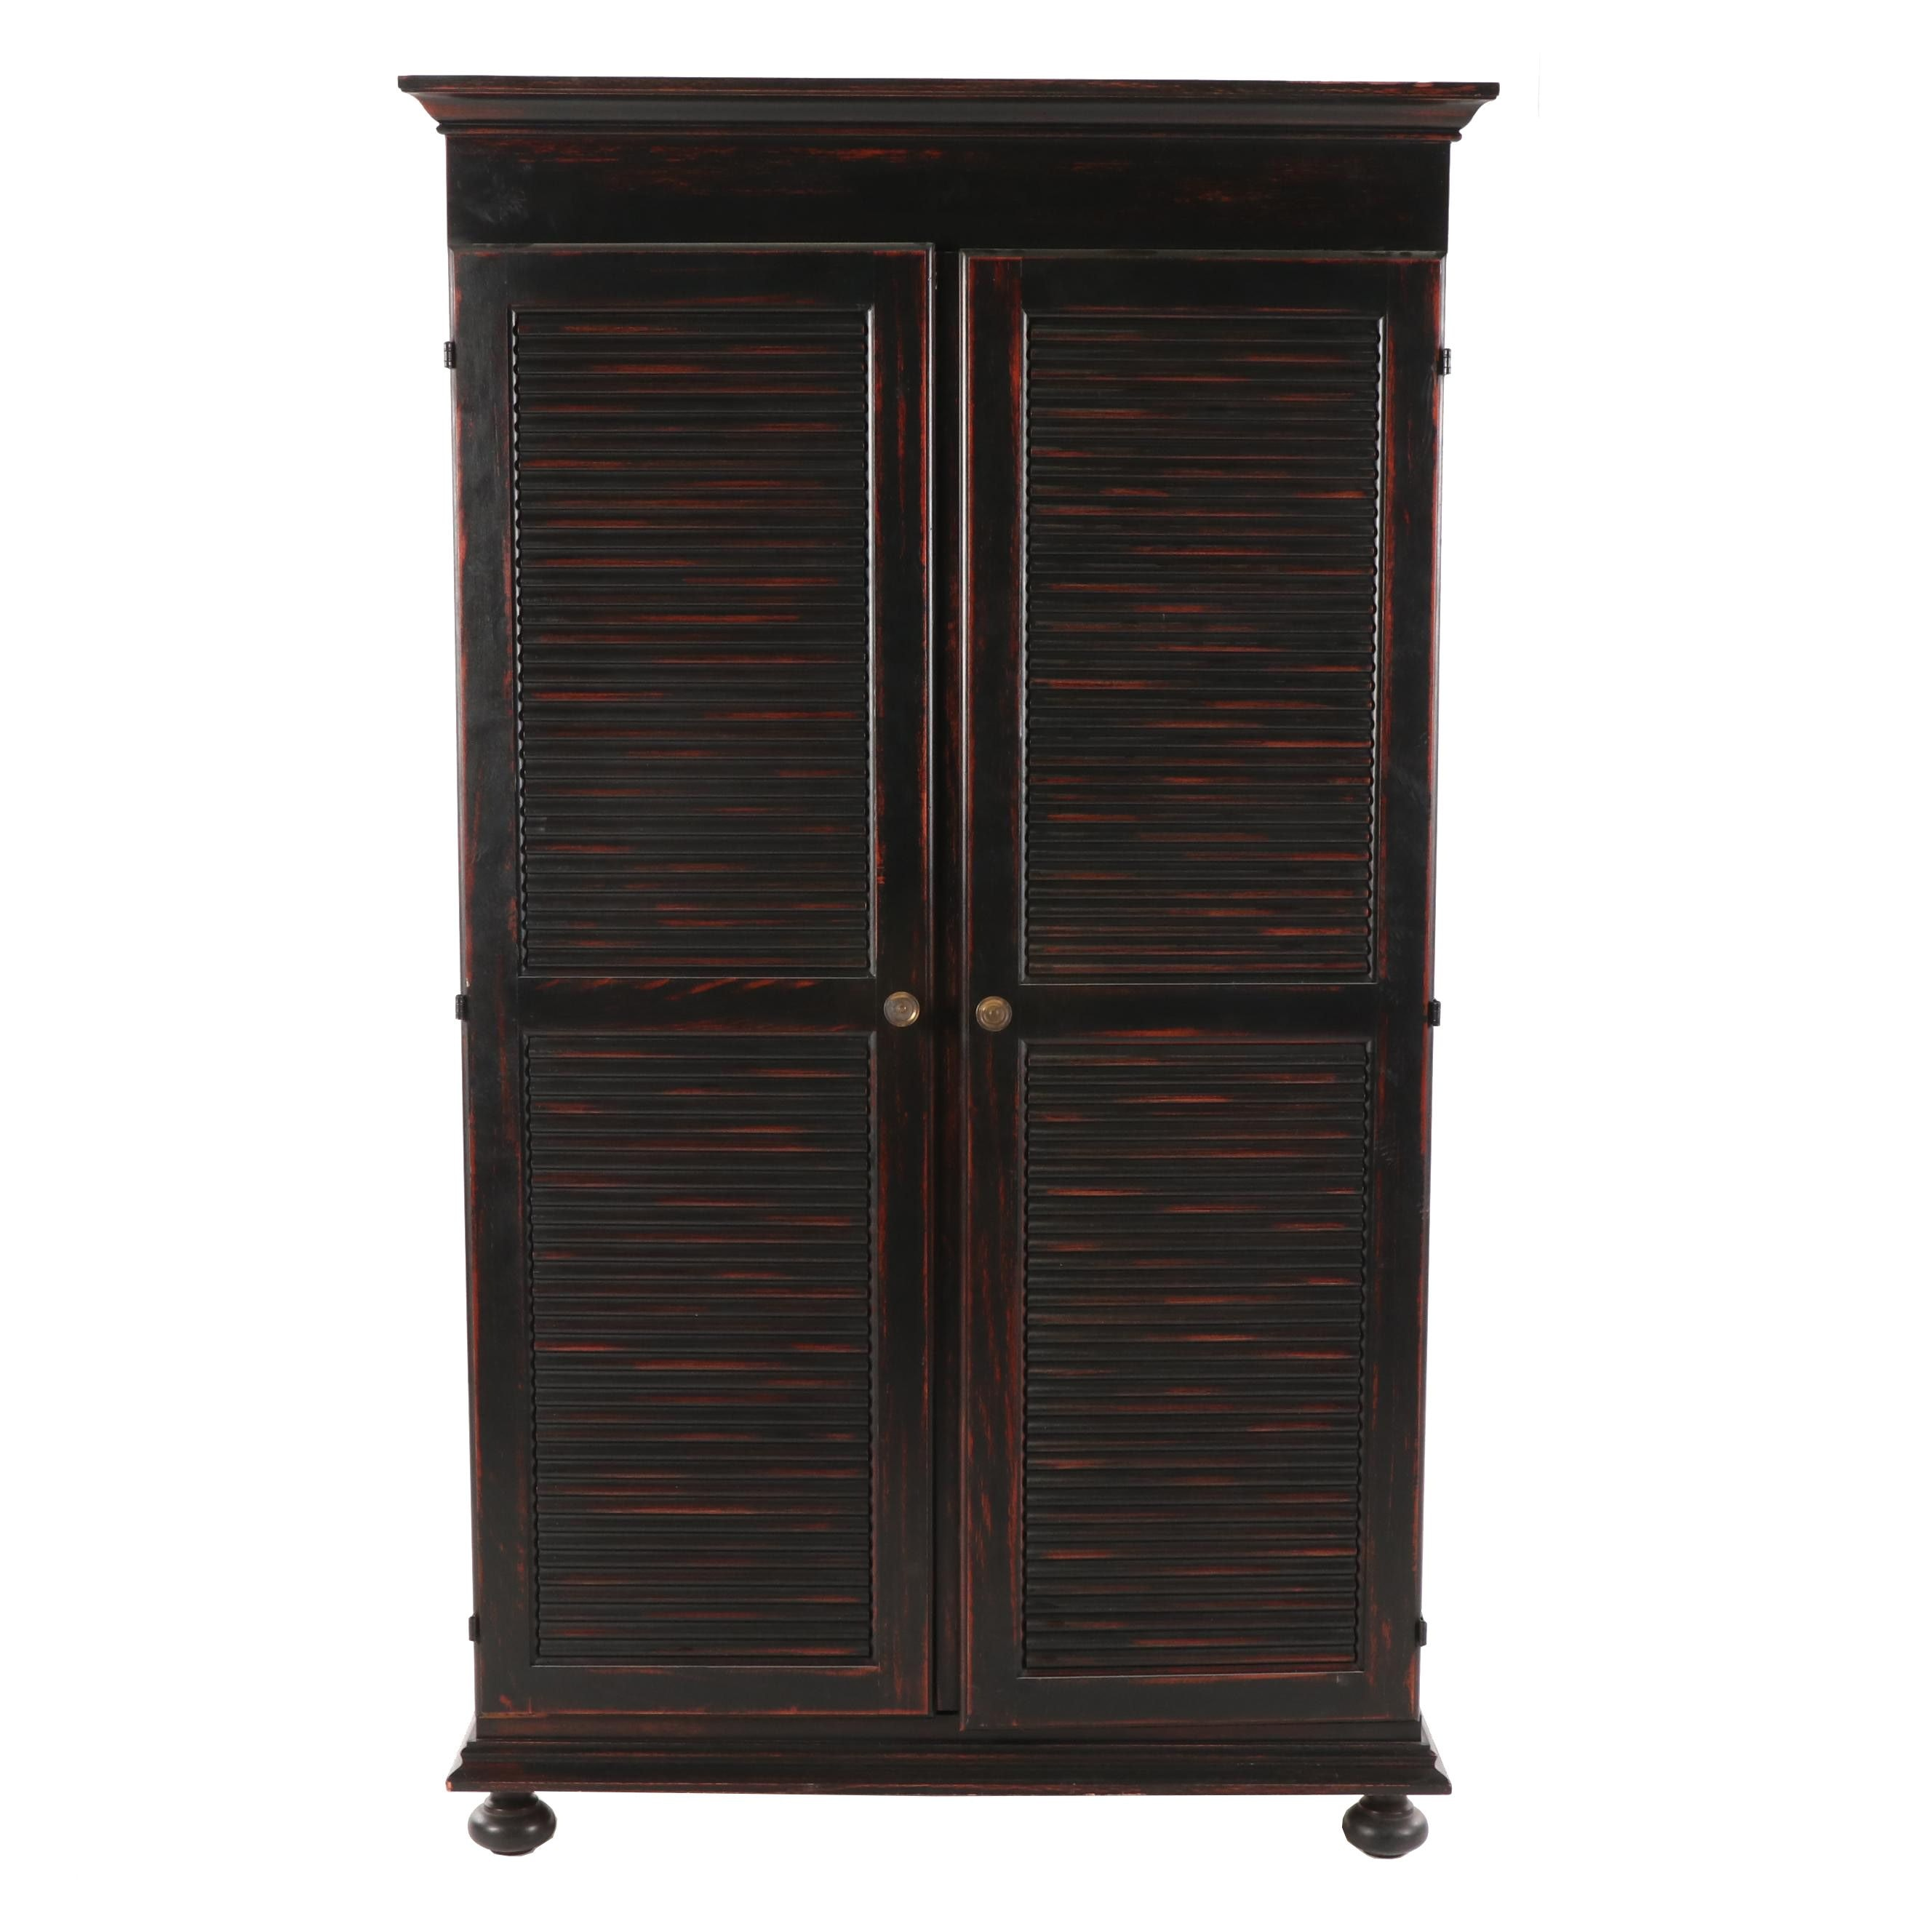 Contemporary Mahogany Stained Wood Media Armoire